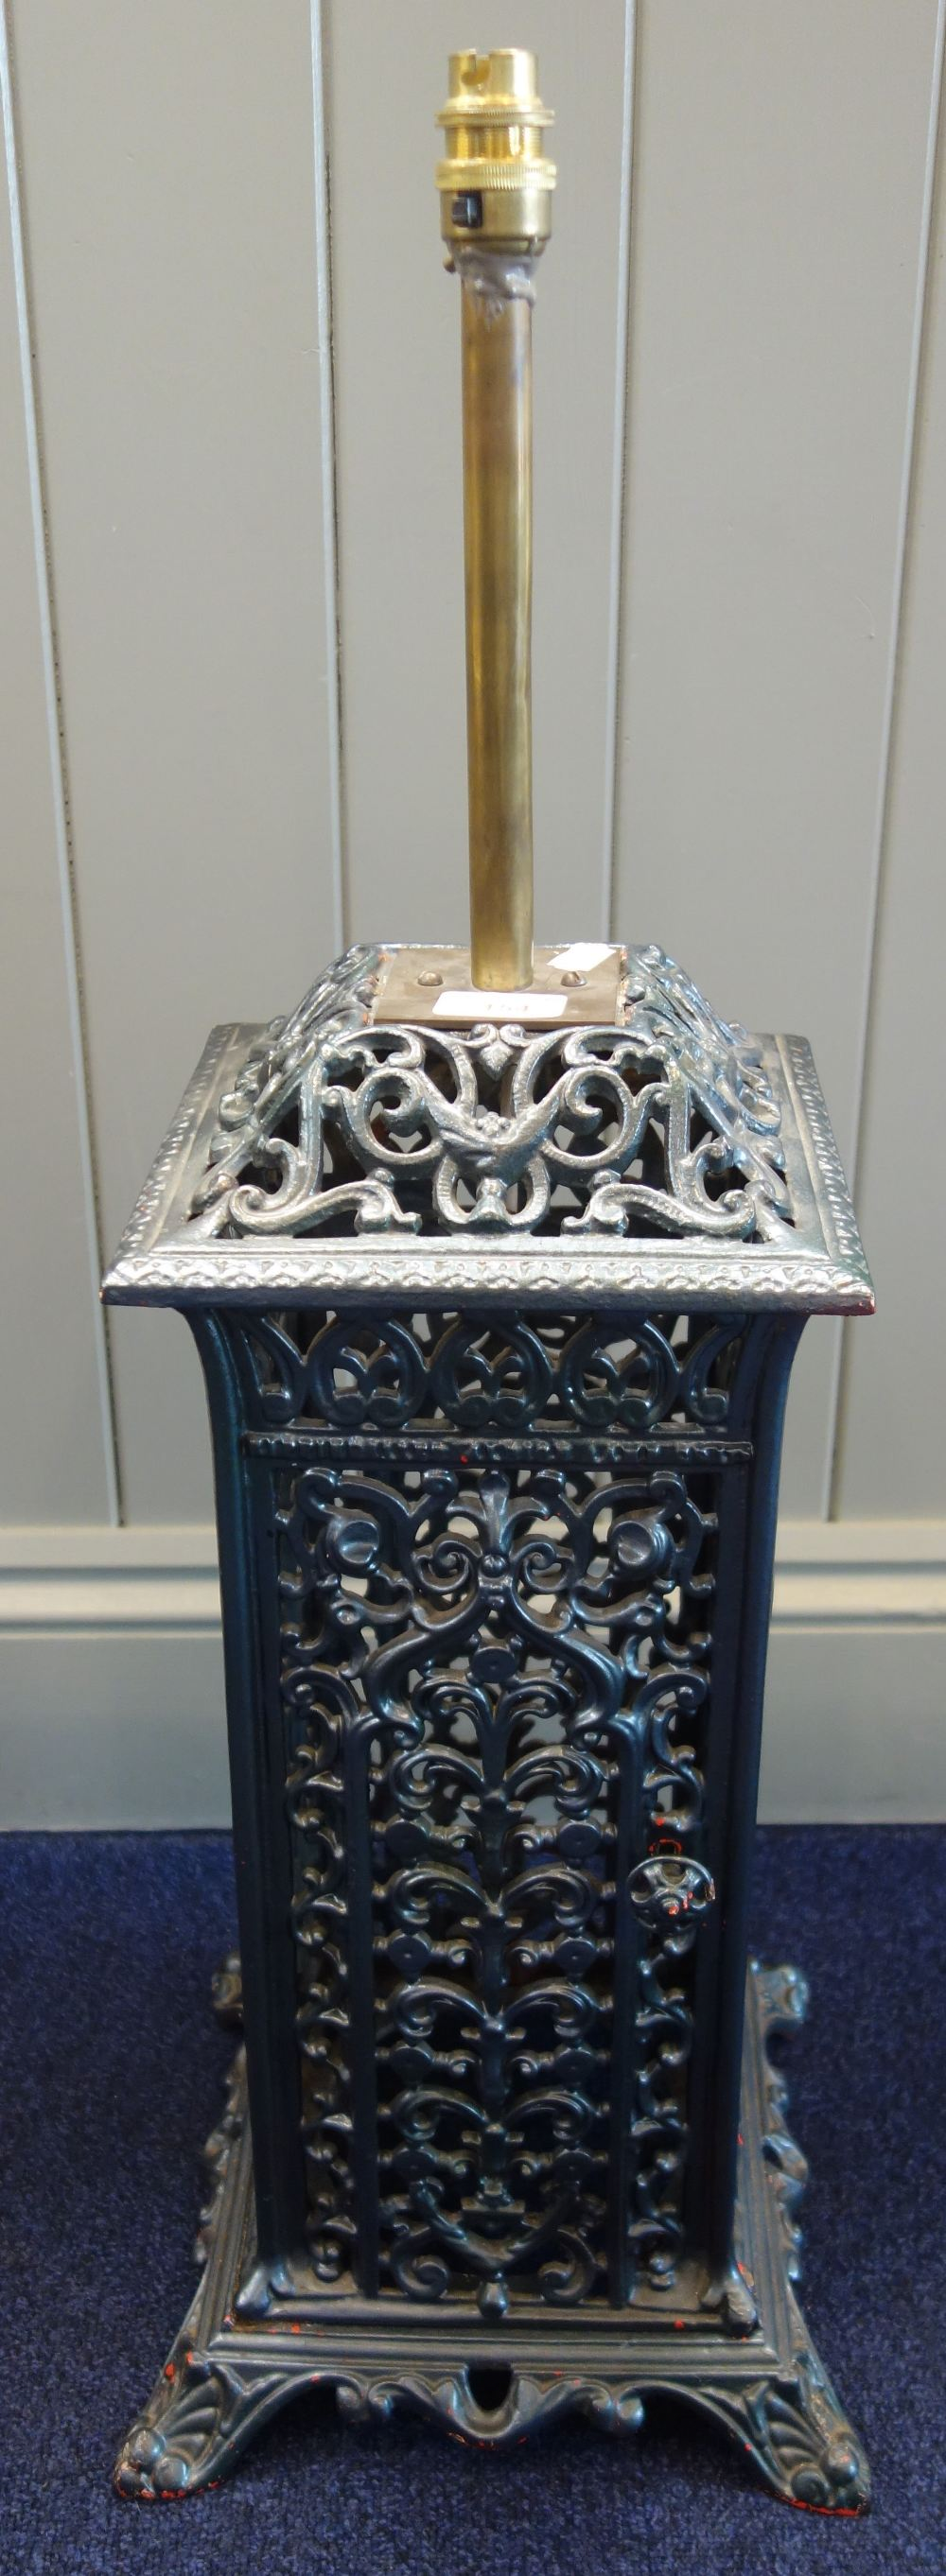 Lot 154 - A VICTORIAN CAST IRON CONSERVATORY HEATER (converted to a lamp)